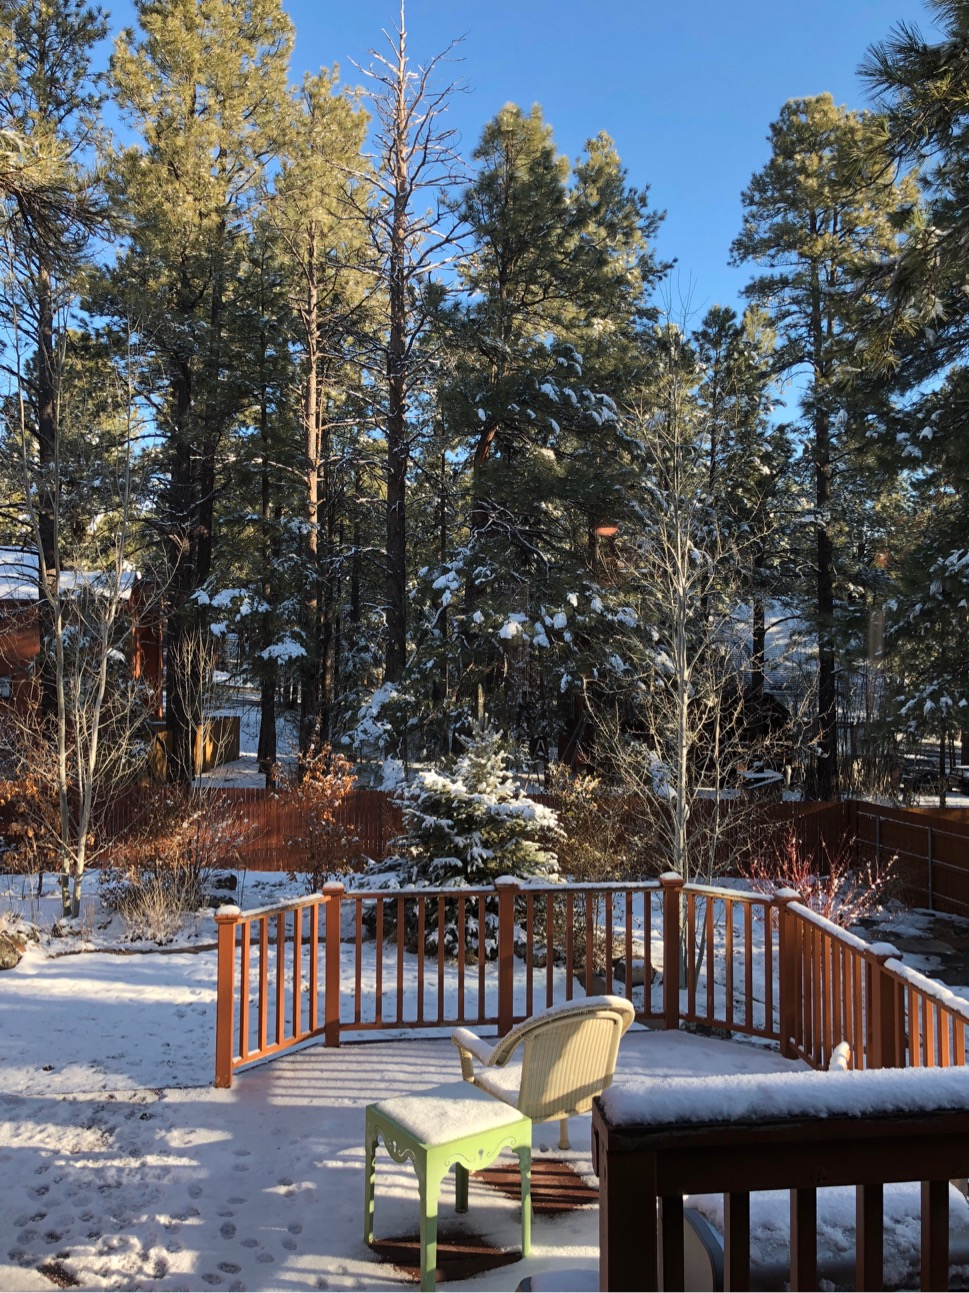 Springtime snow in the backyard with pine trees and blue sky.